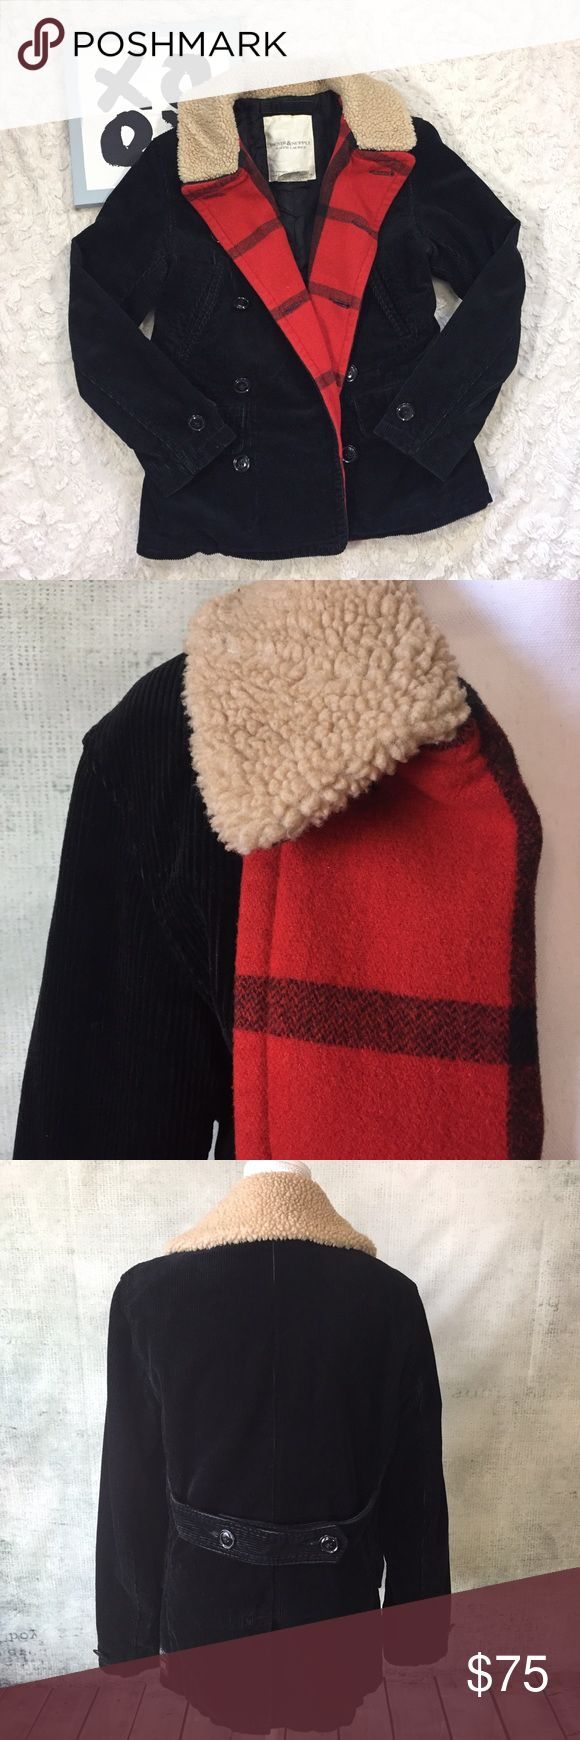 RL Sheep Fur Buffalo Print Black Jacket Coat Ralph Lauren Demin and Supply Buffalo Print / Sheep Skin / Corduroy Black Jacket Coat.  Size Small. Under placket is wool. Measurements - In inches, taken flat and are approximate (double where appropriate): 29 length 19 bust Denim & Supply Ralph Lauren Jackets & Coats